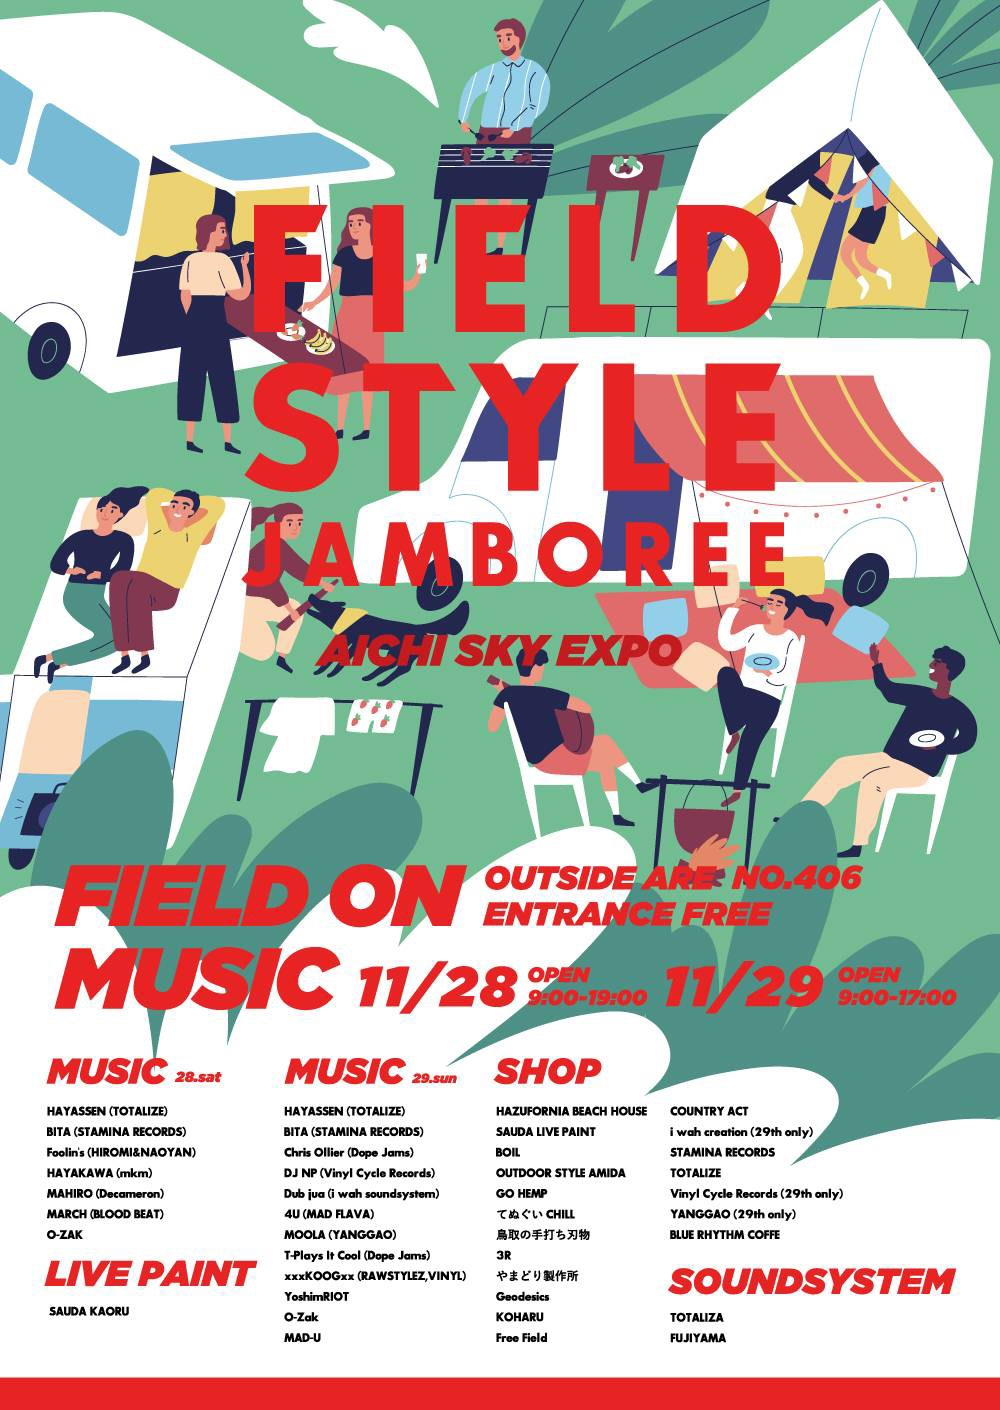 FILEDSTYLE JAMBOREE 2020